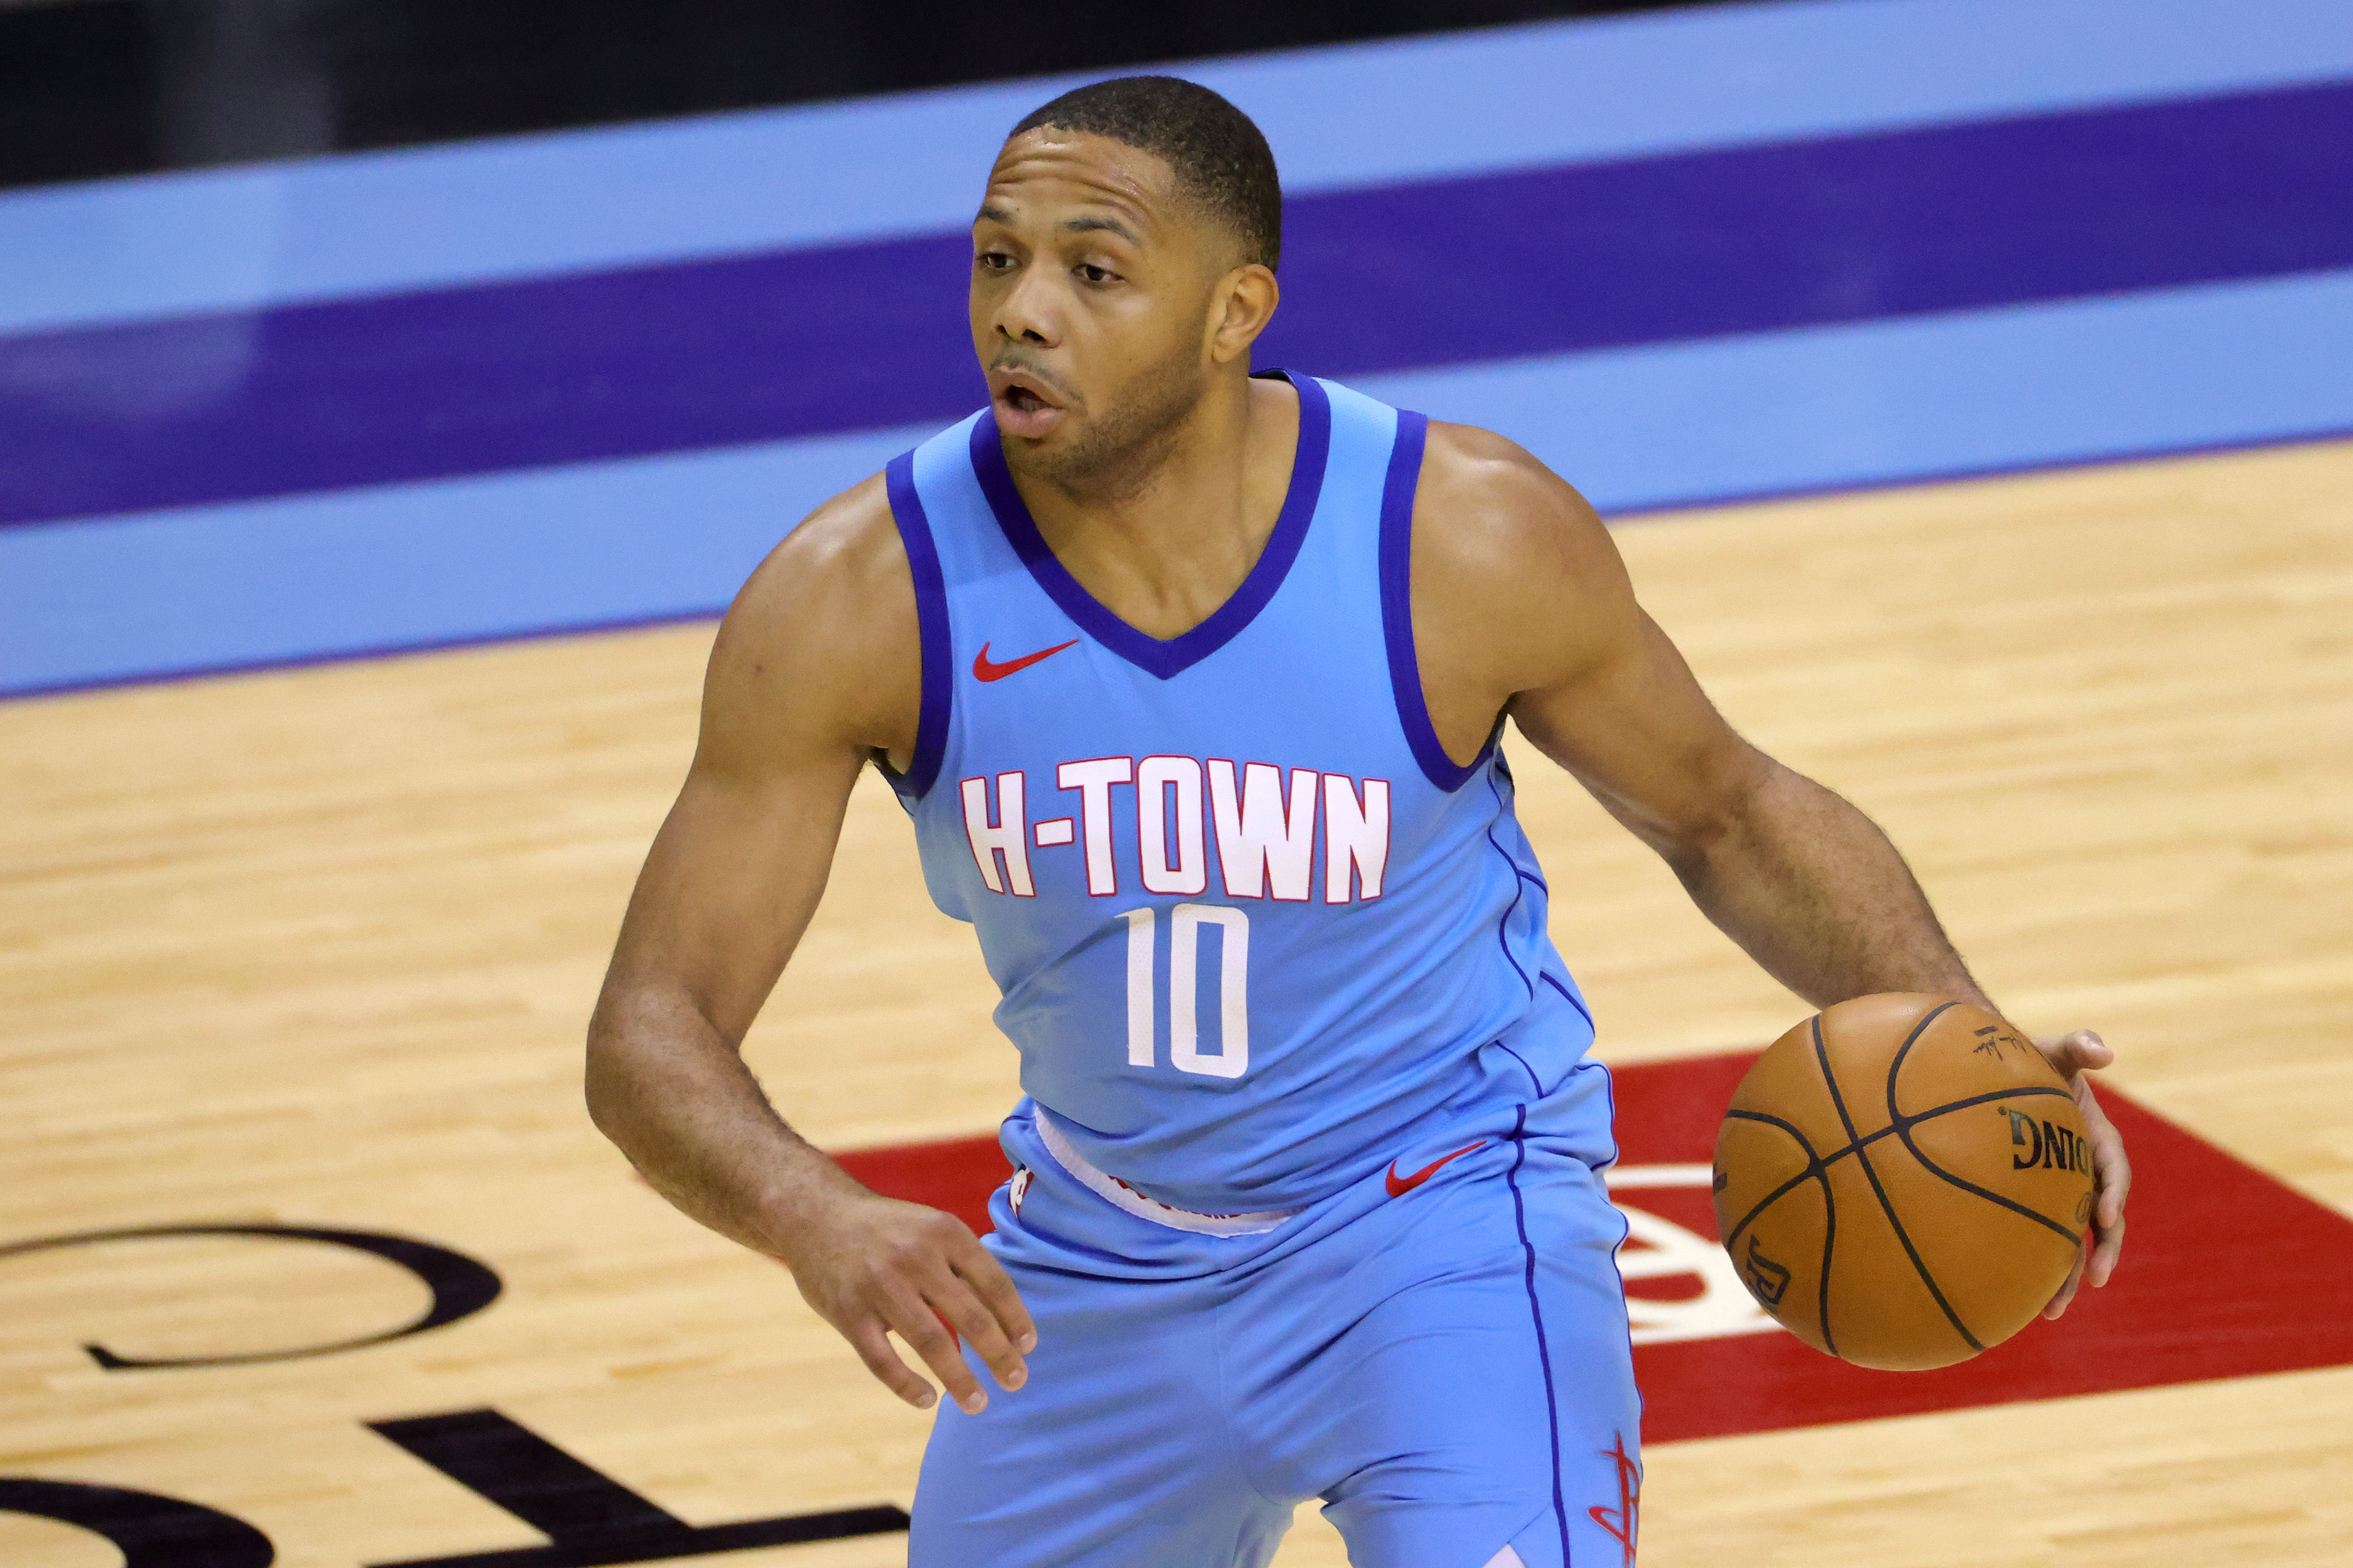 Eric Gordon making plays for the Rockets